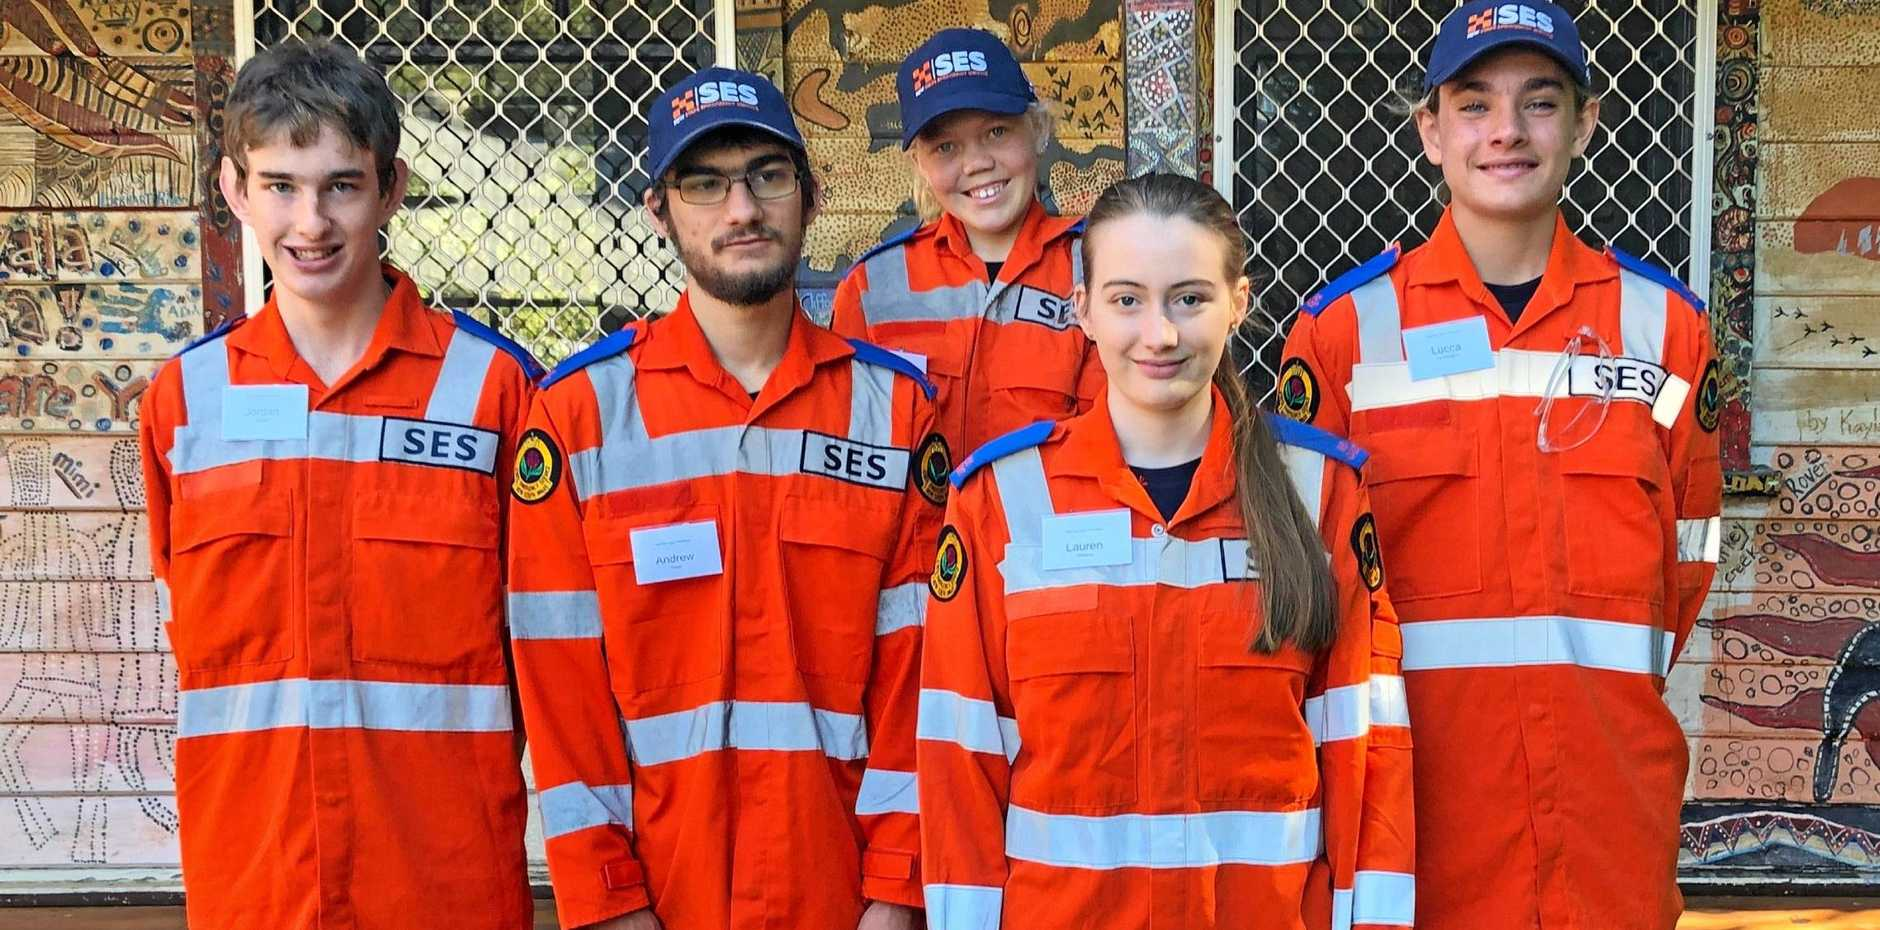 SES CADETS: Jordan Argue, Andrew Rixon, Lauren Williams, Lucca De Almeida and at back is Isabella Cougle.